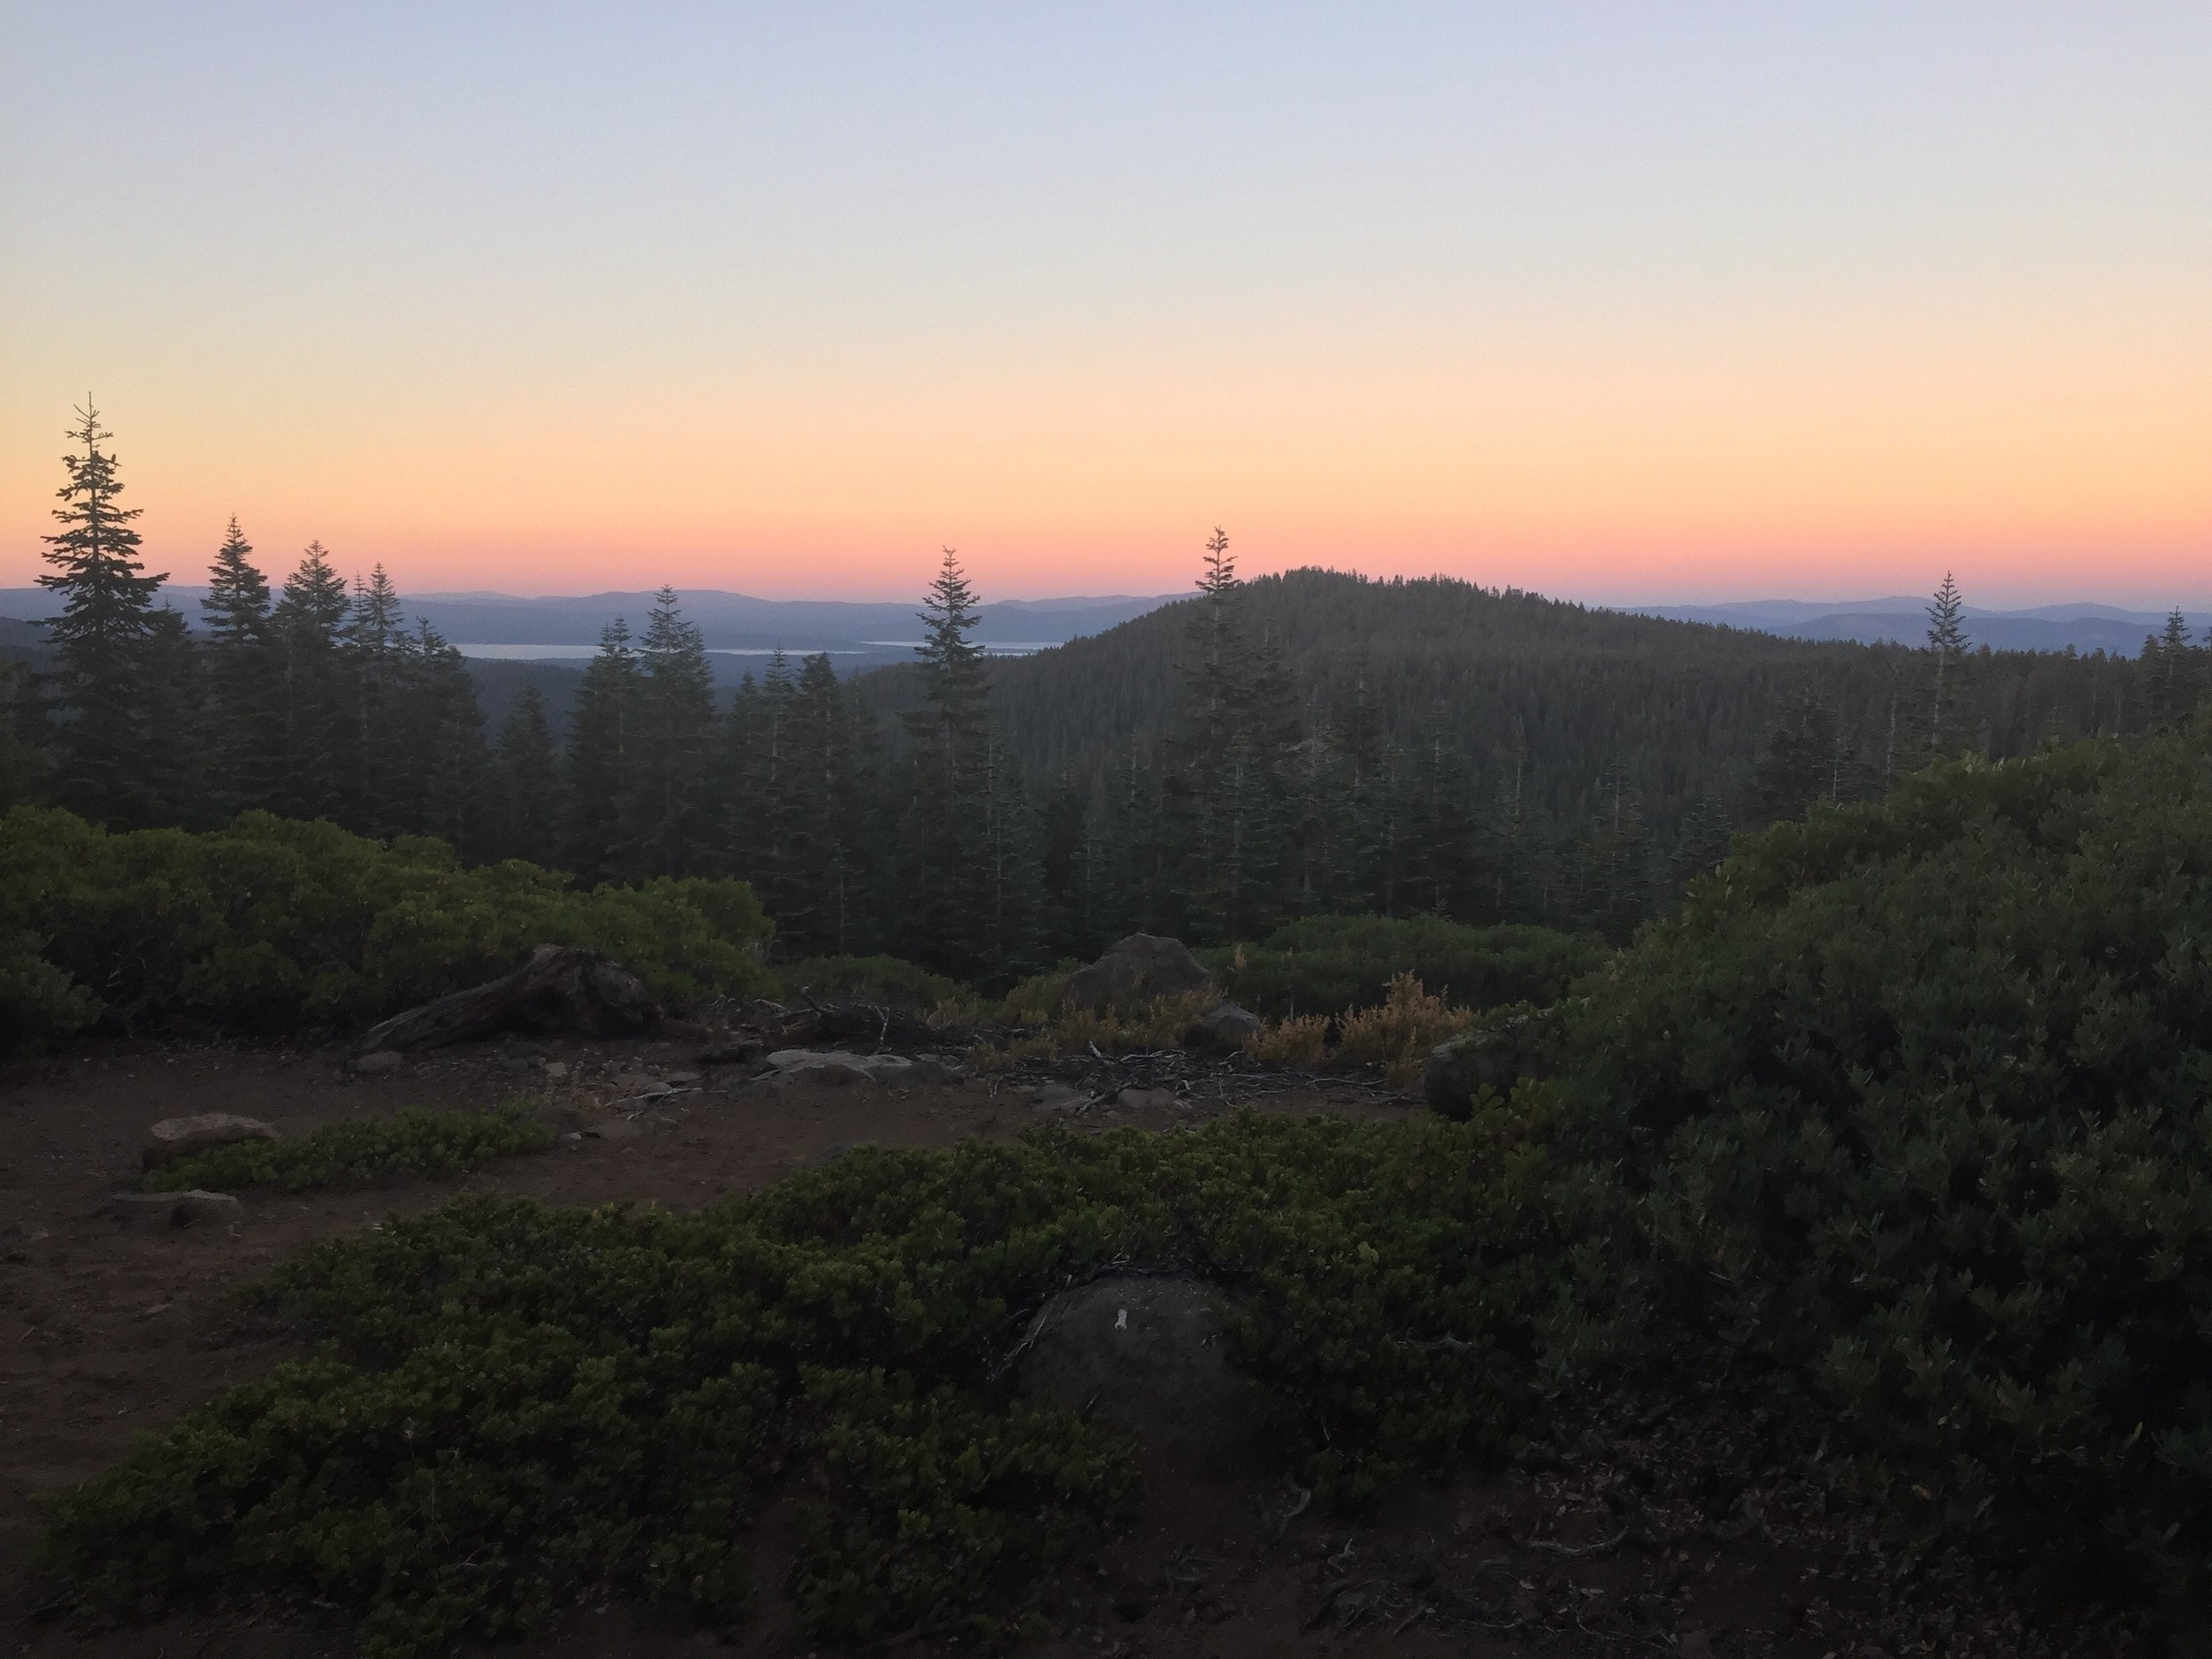 Sunset as we complete our day's hike towards Humbug Summit